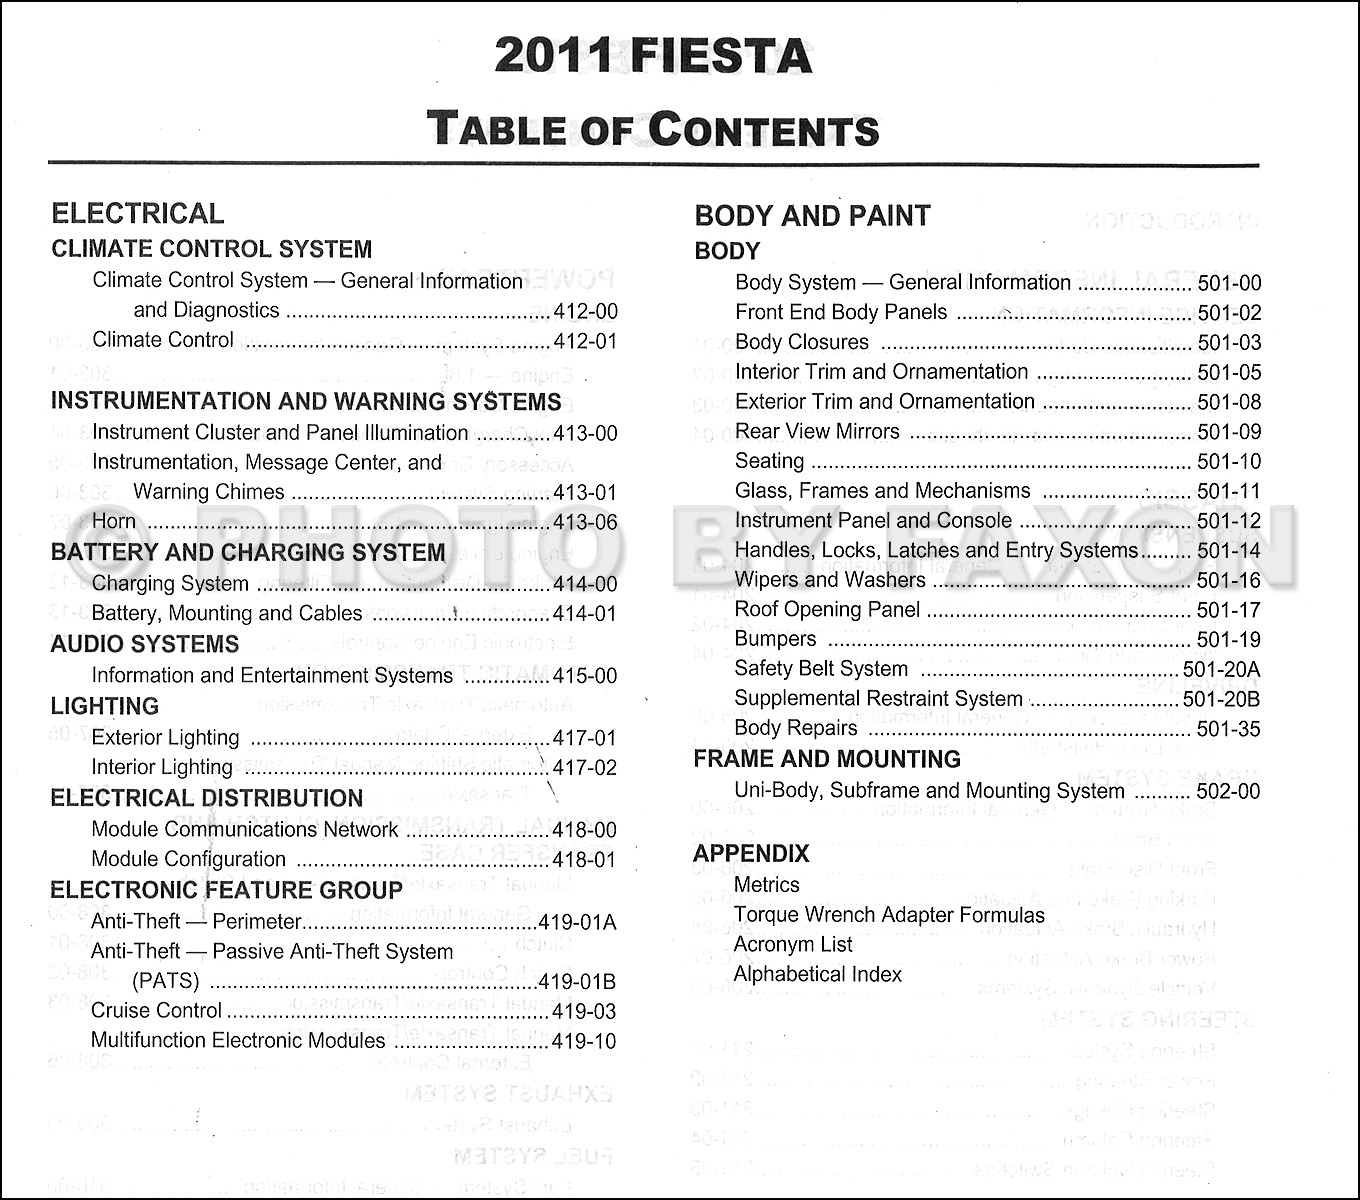 Ford Fiesta Wiring Diagram Page 4 And Schematics 2012 Focus Fuse Block 2011 Repair Shop Manual Original Rh Faxonautoliterature Com